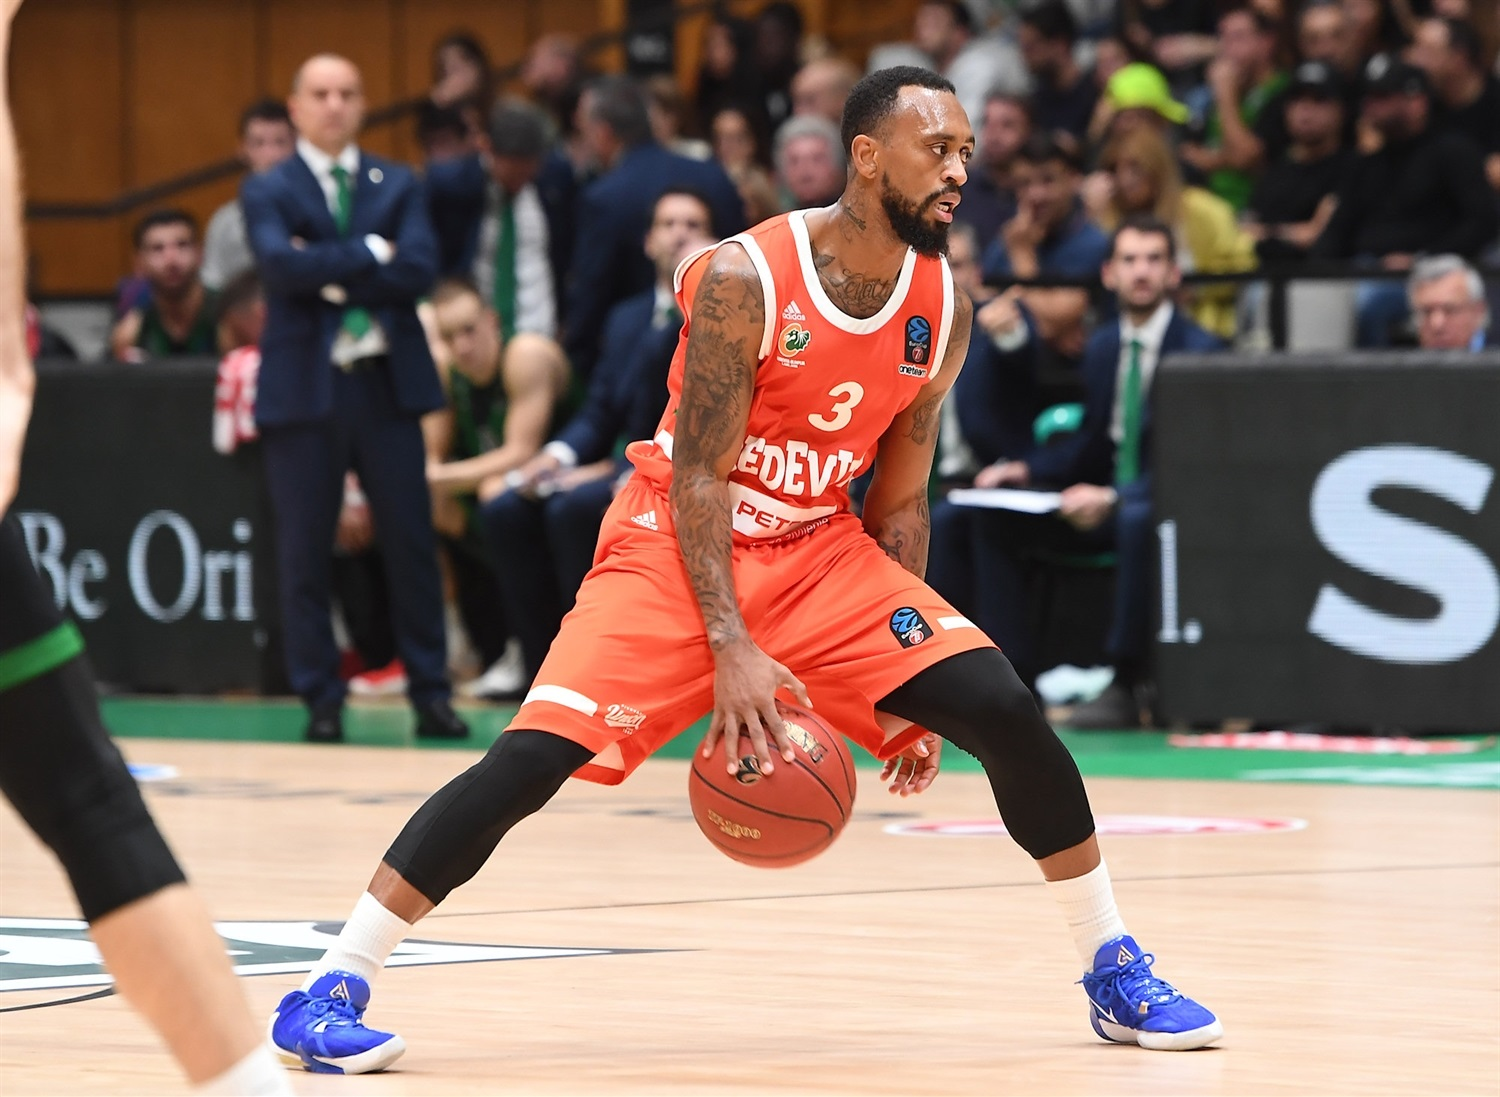 Ryan Boatright - Cedevita Olimpija Ljubljana (photo Joventut - David Grau) - EC19